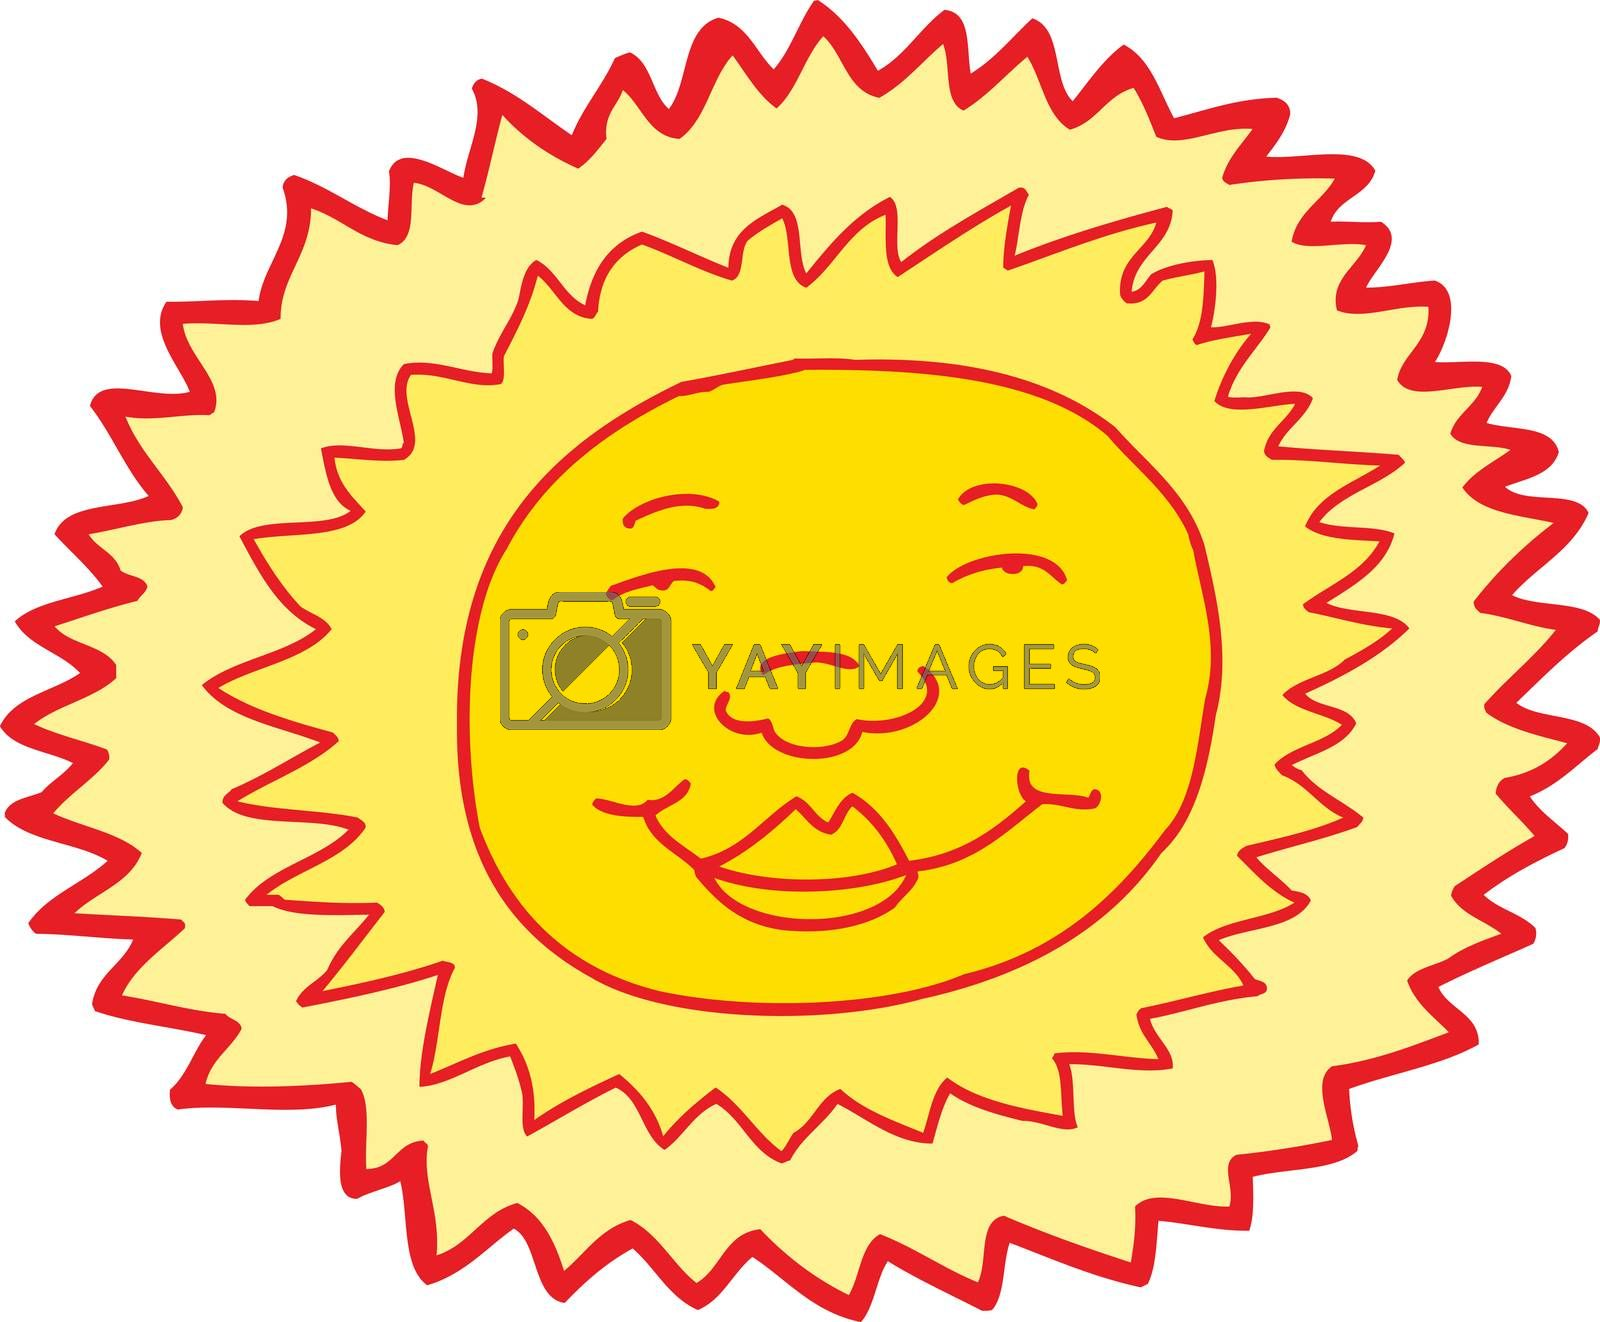 Royalty free image of Smiling Sun Avatar by TheBlackRhino